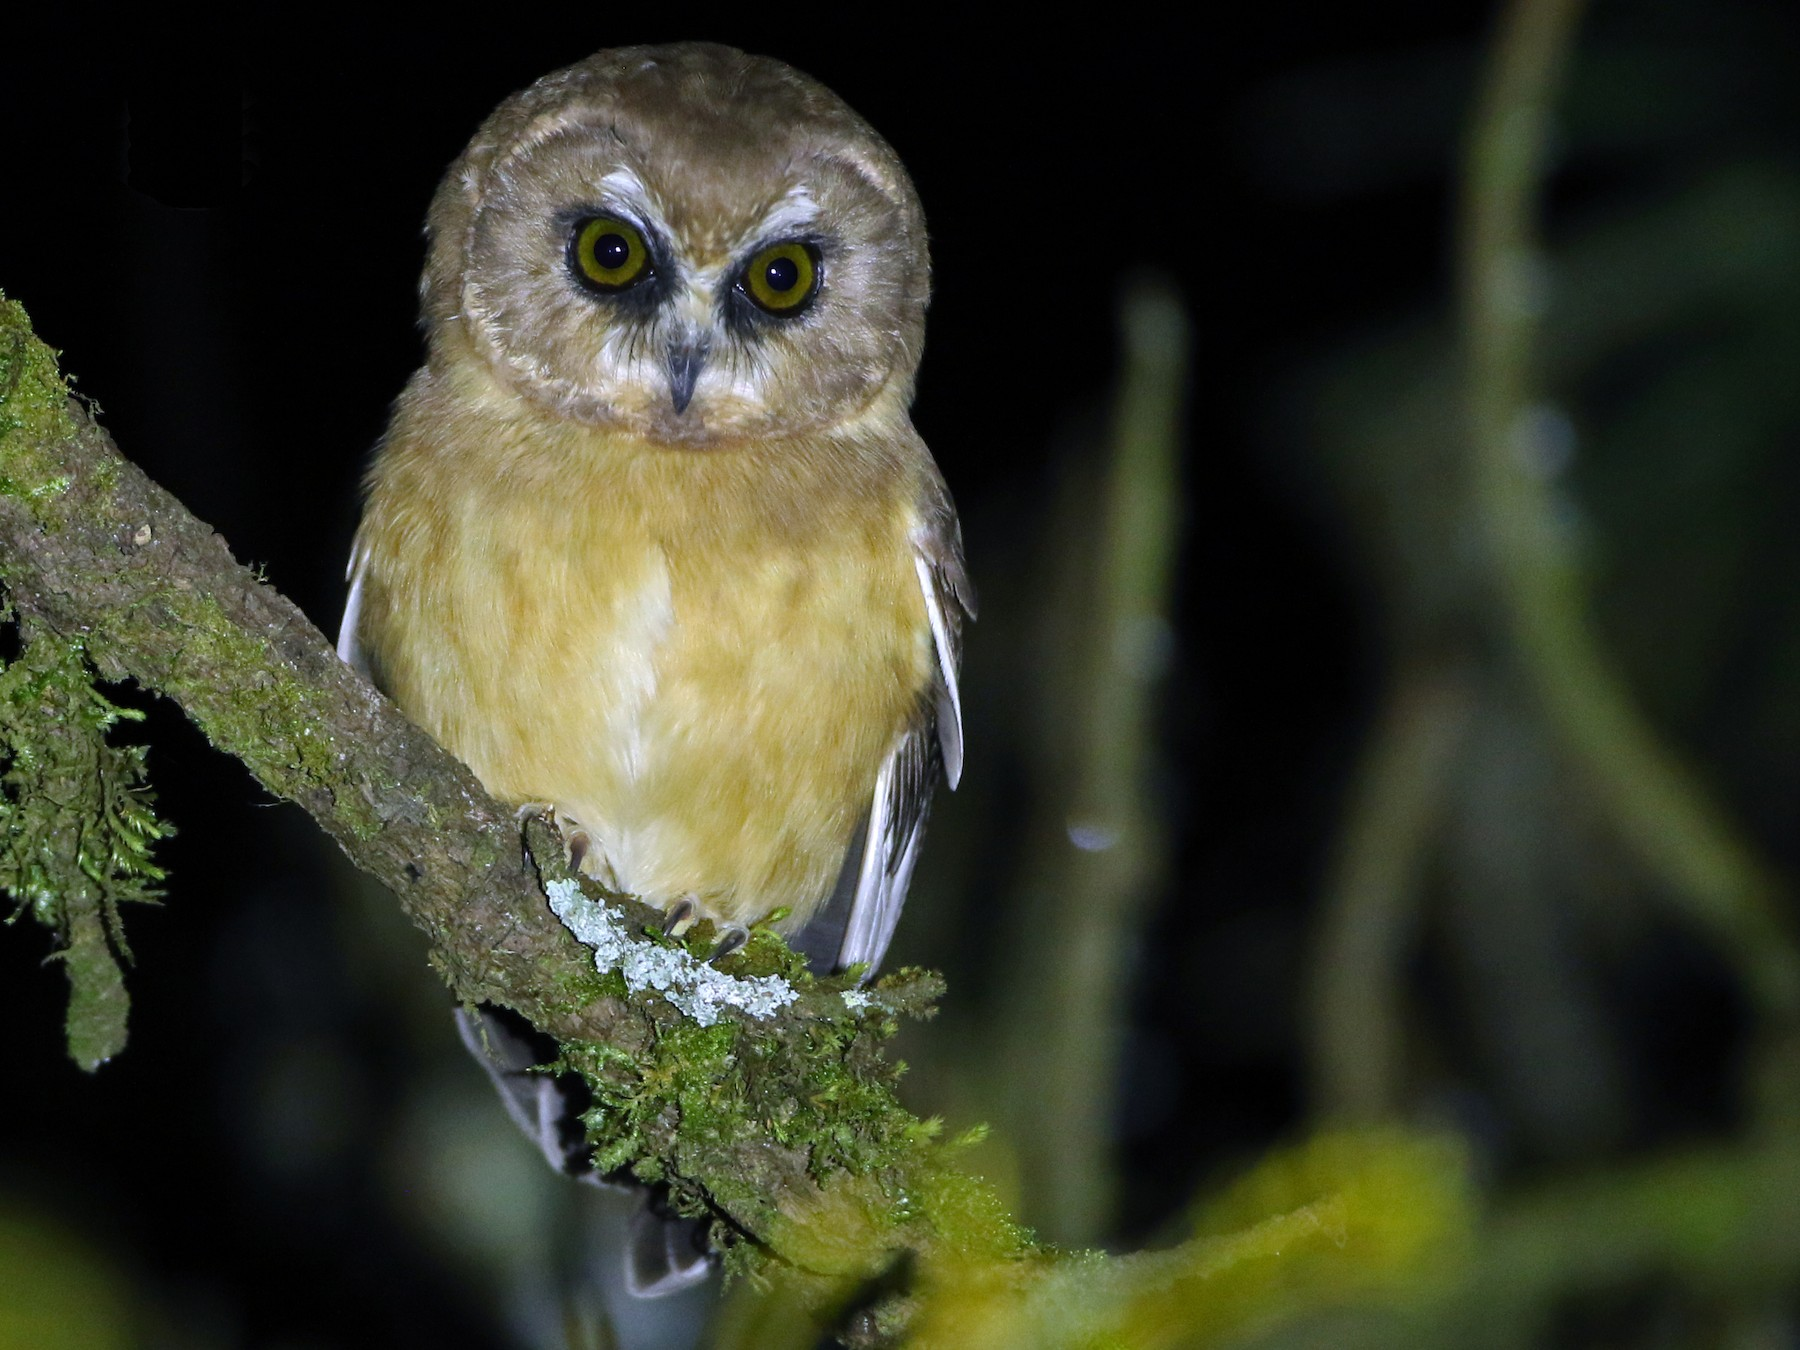 Unspotted Saw-whet Owl - Luke Seitz